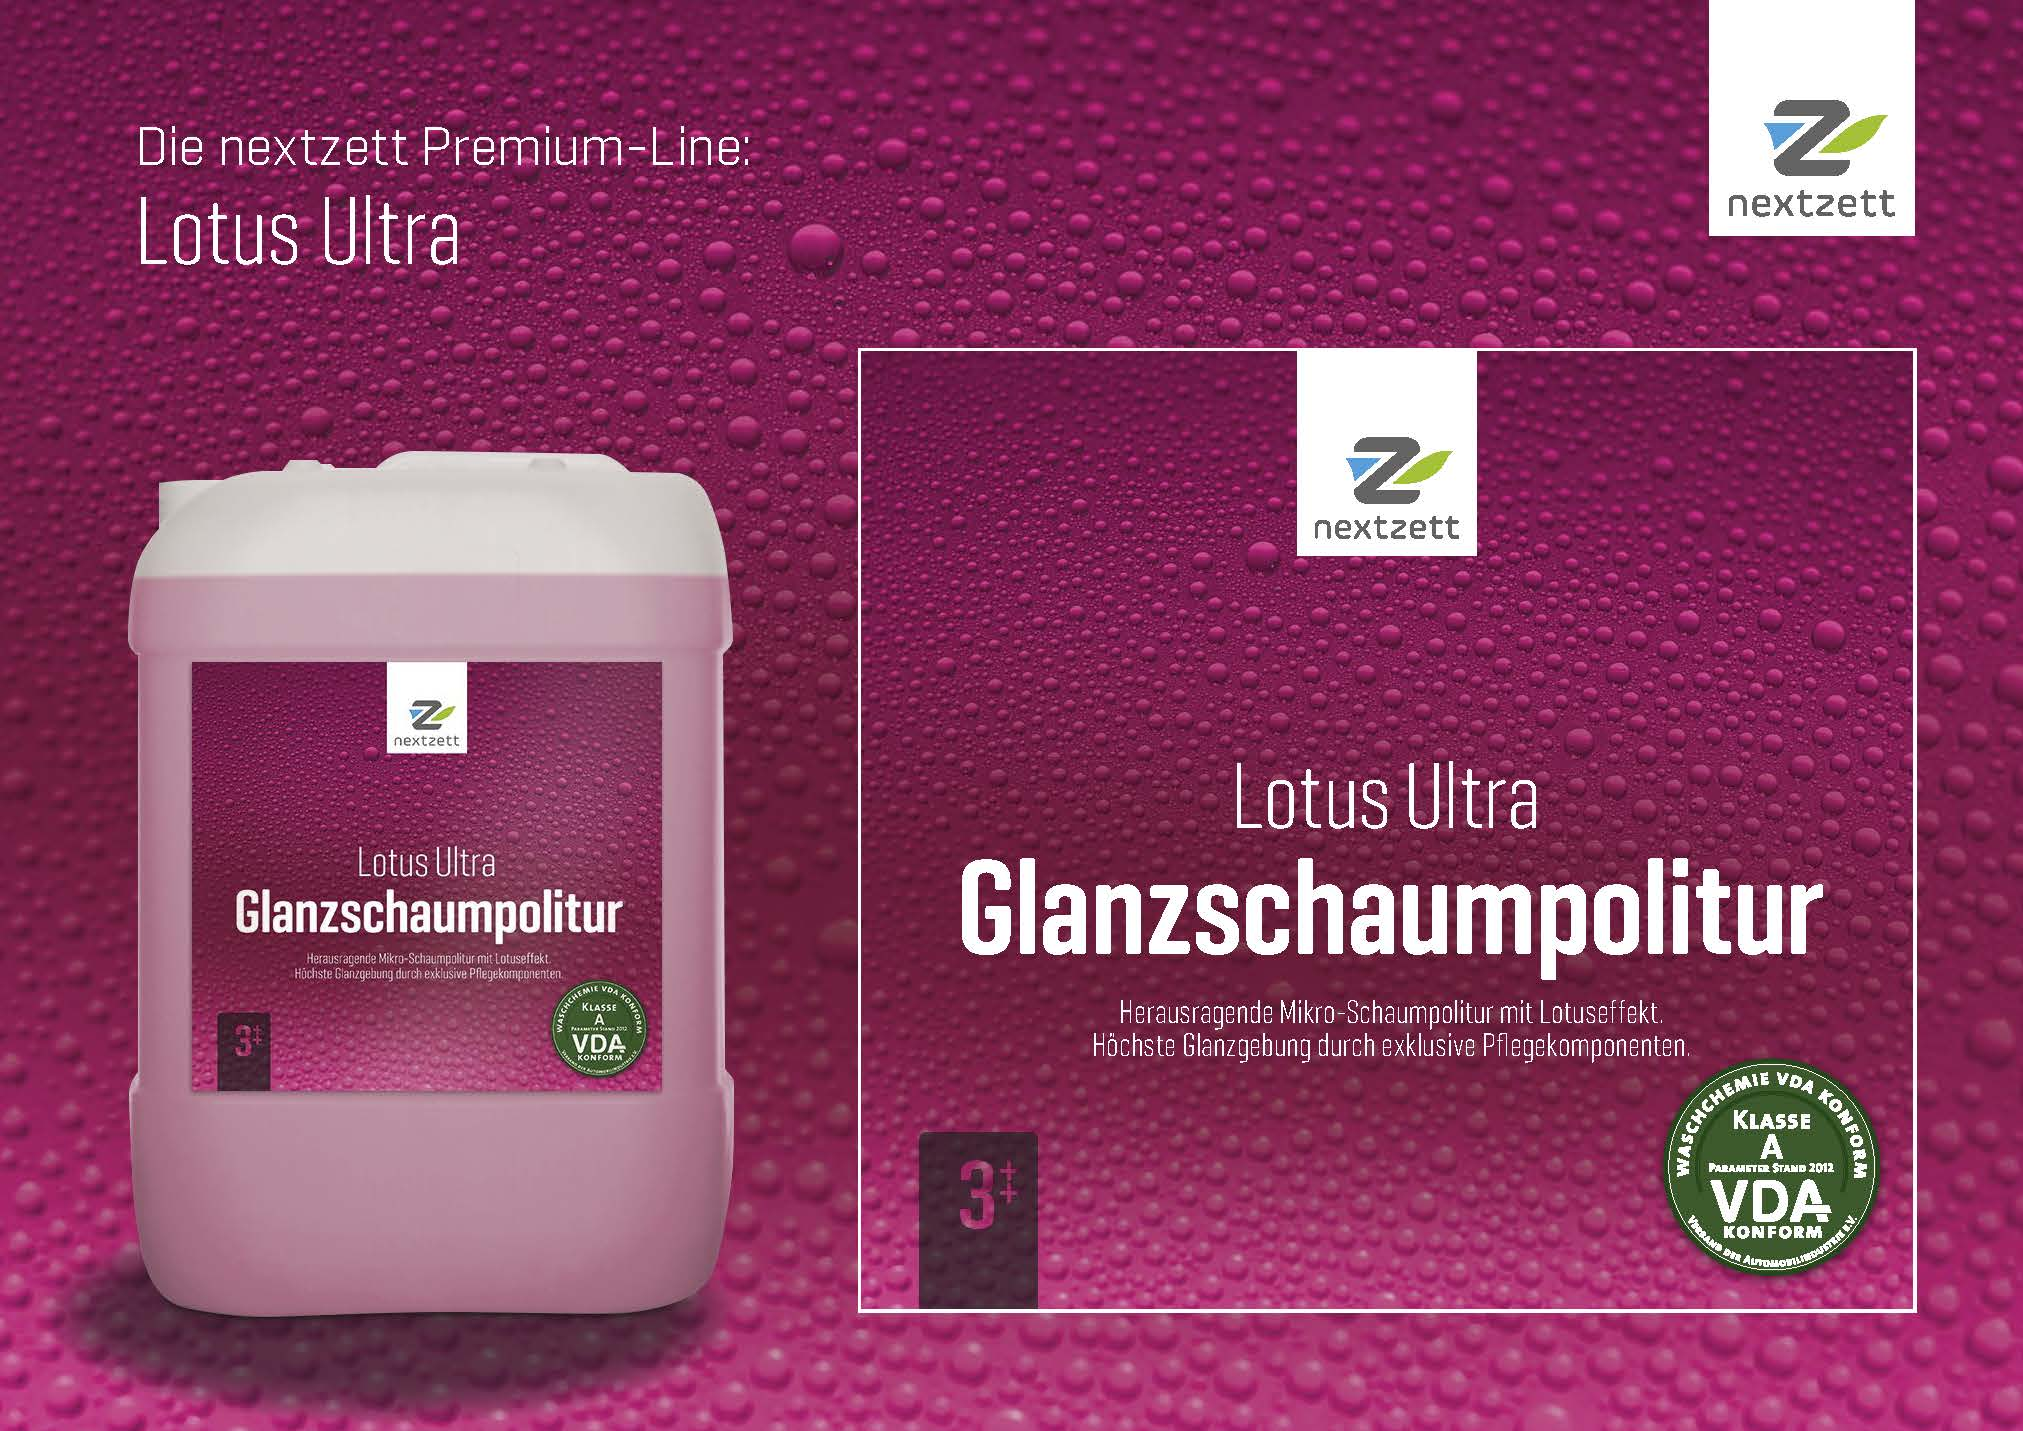 Nextzett Lotus Ultra Glanzschaumpolitur - Flyer